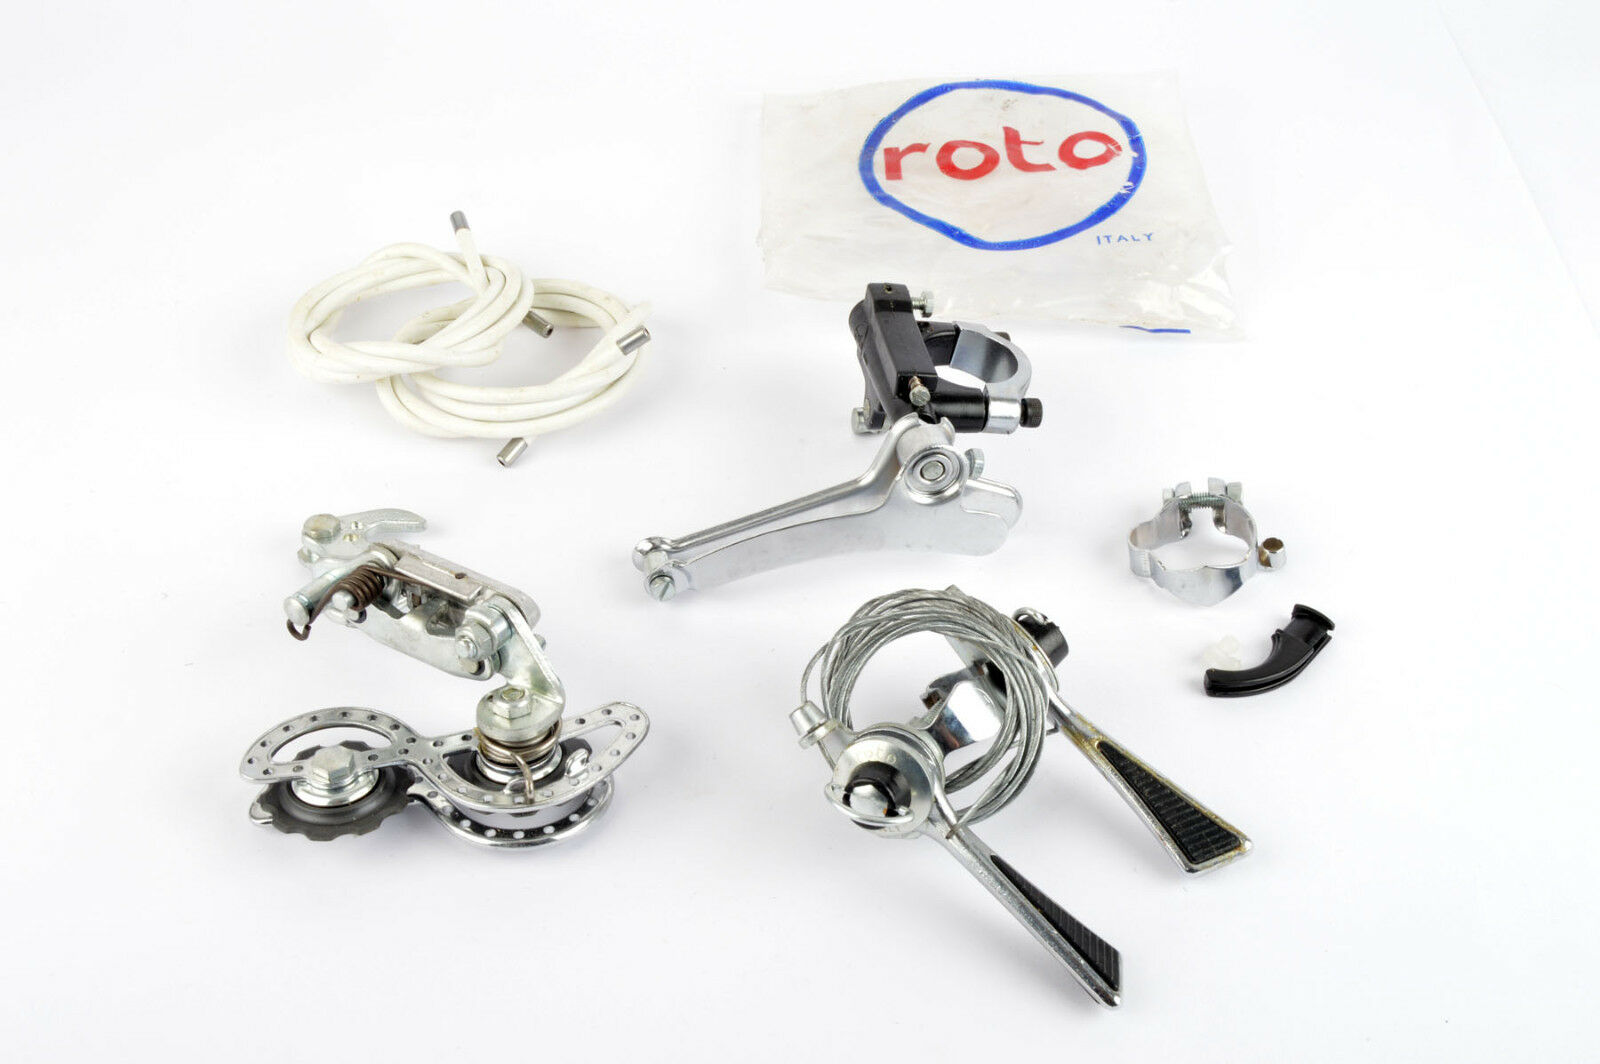 NEW Roto friction Shifting Set from the the the 1970s NOS 63deaf